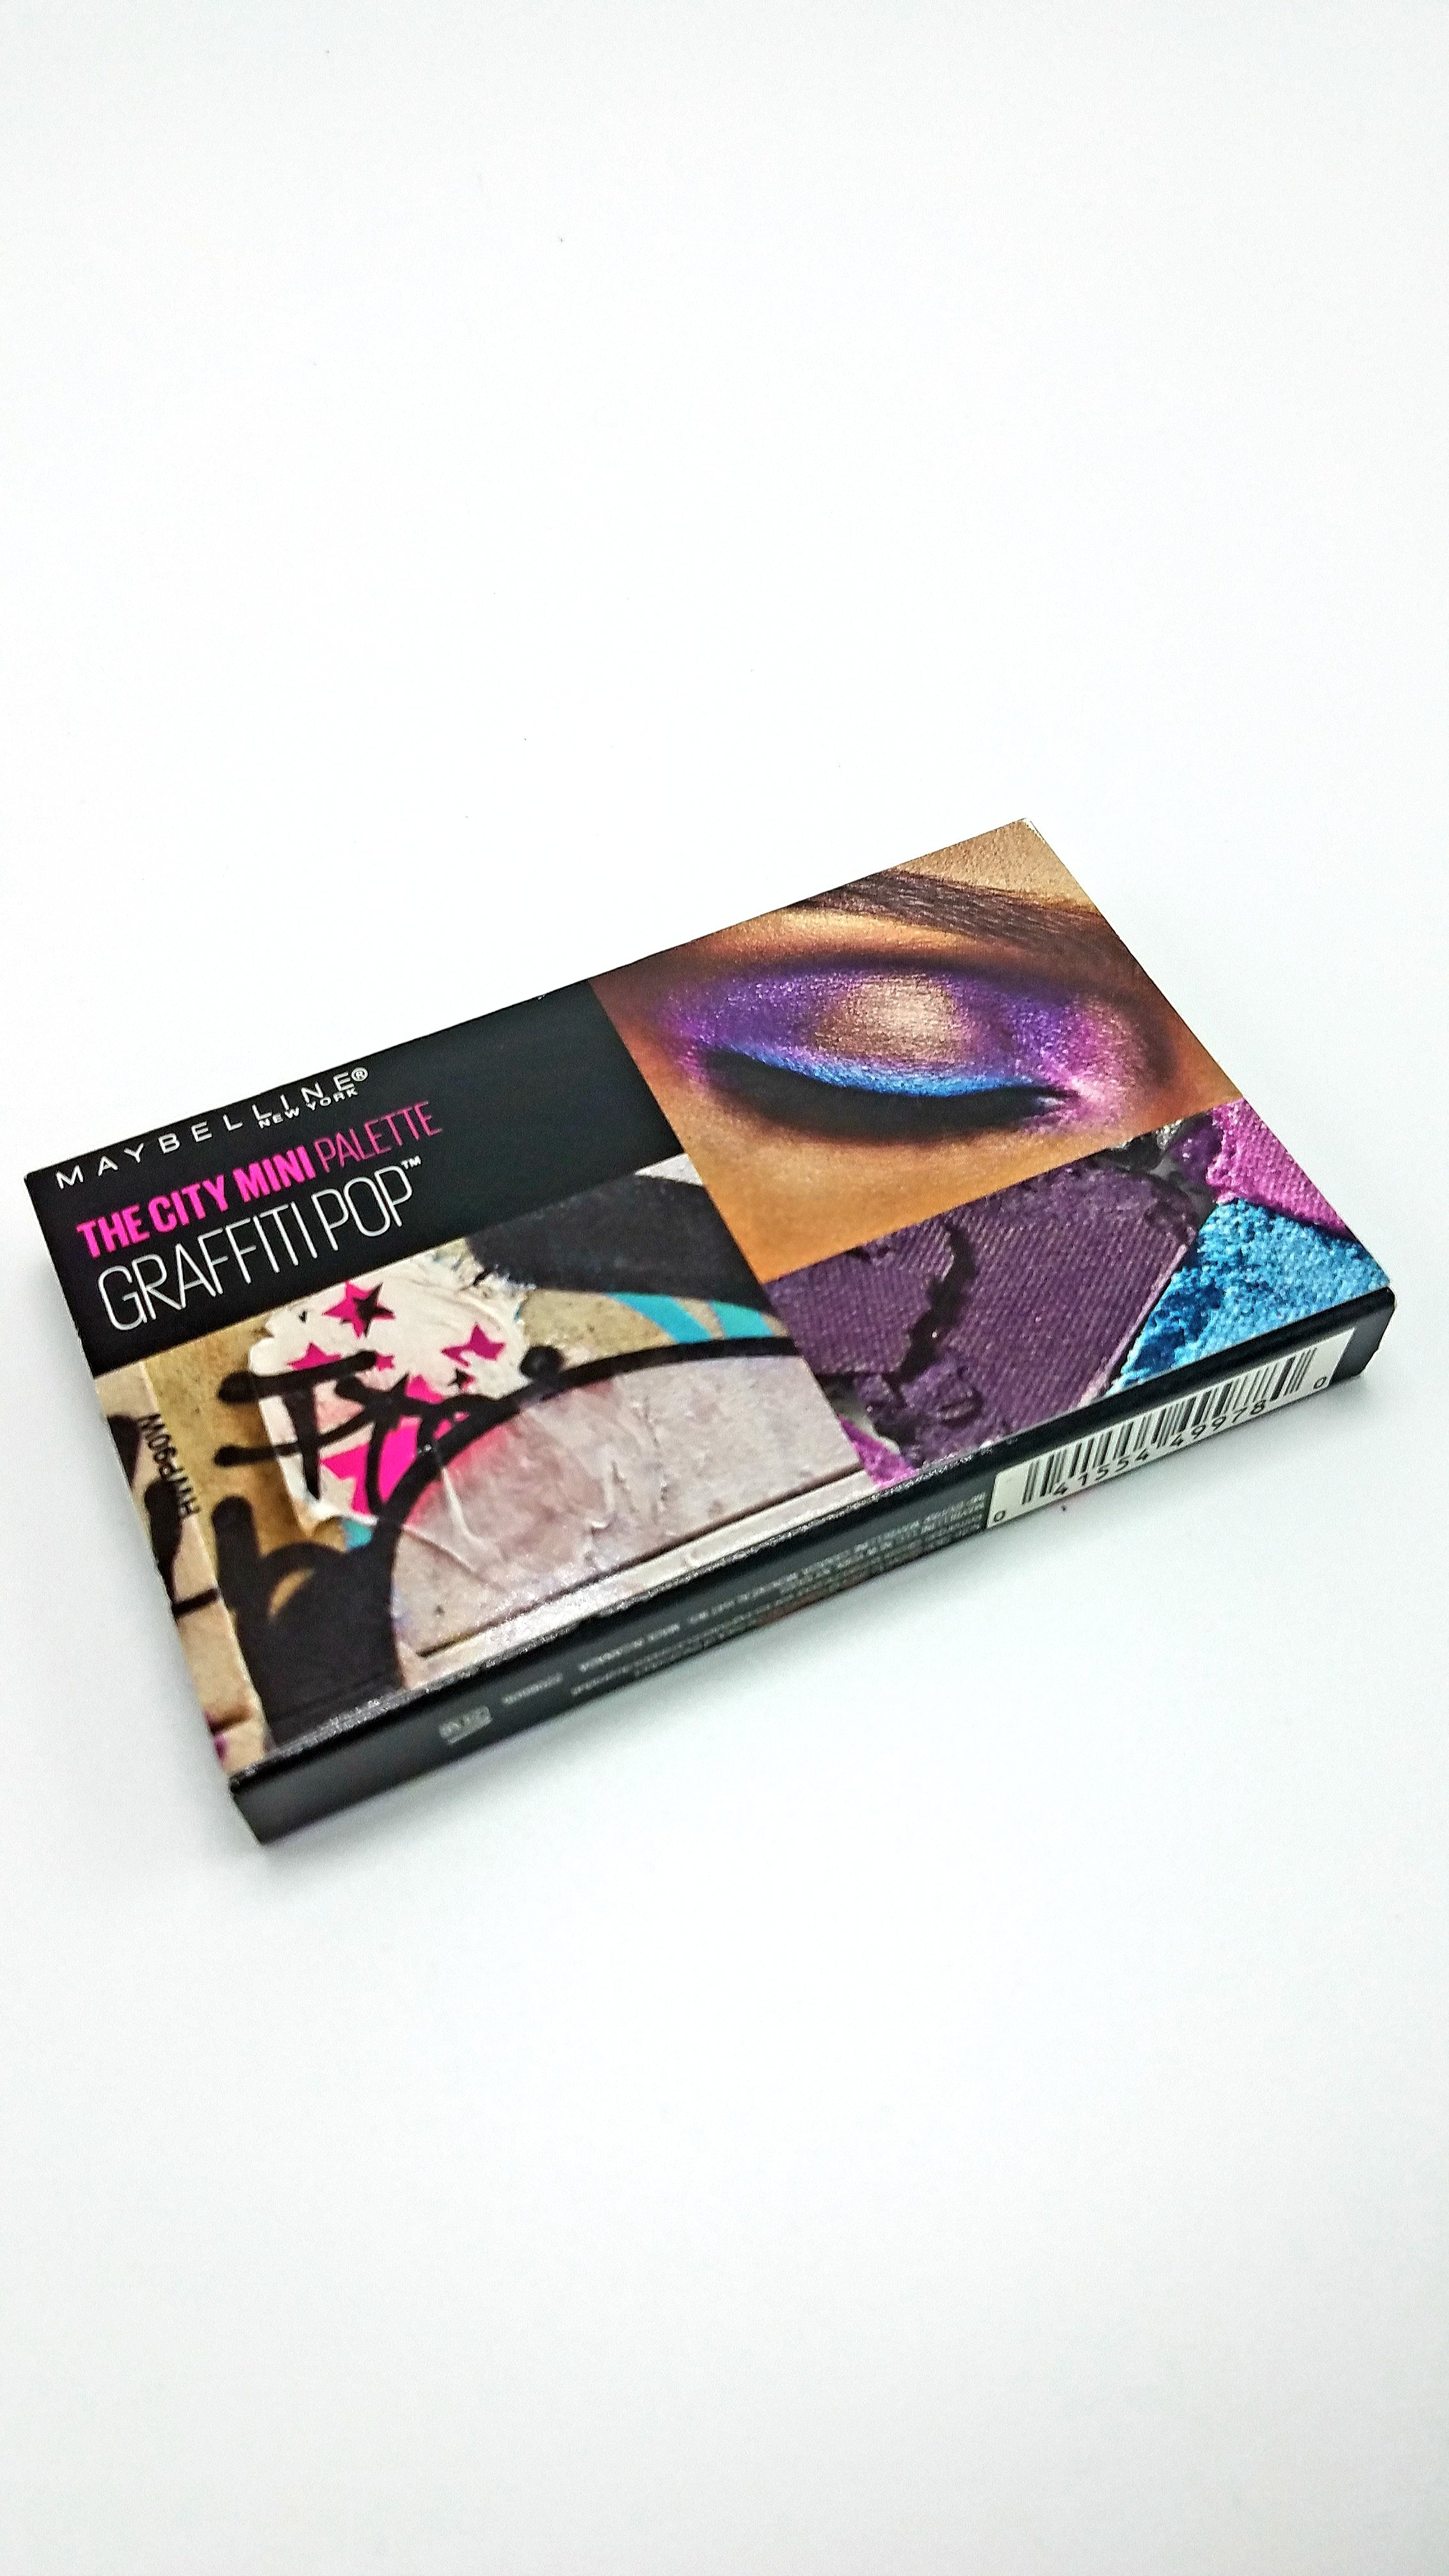 Maybelline® New York The City Mini Palette